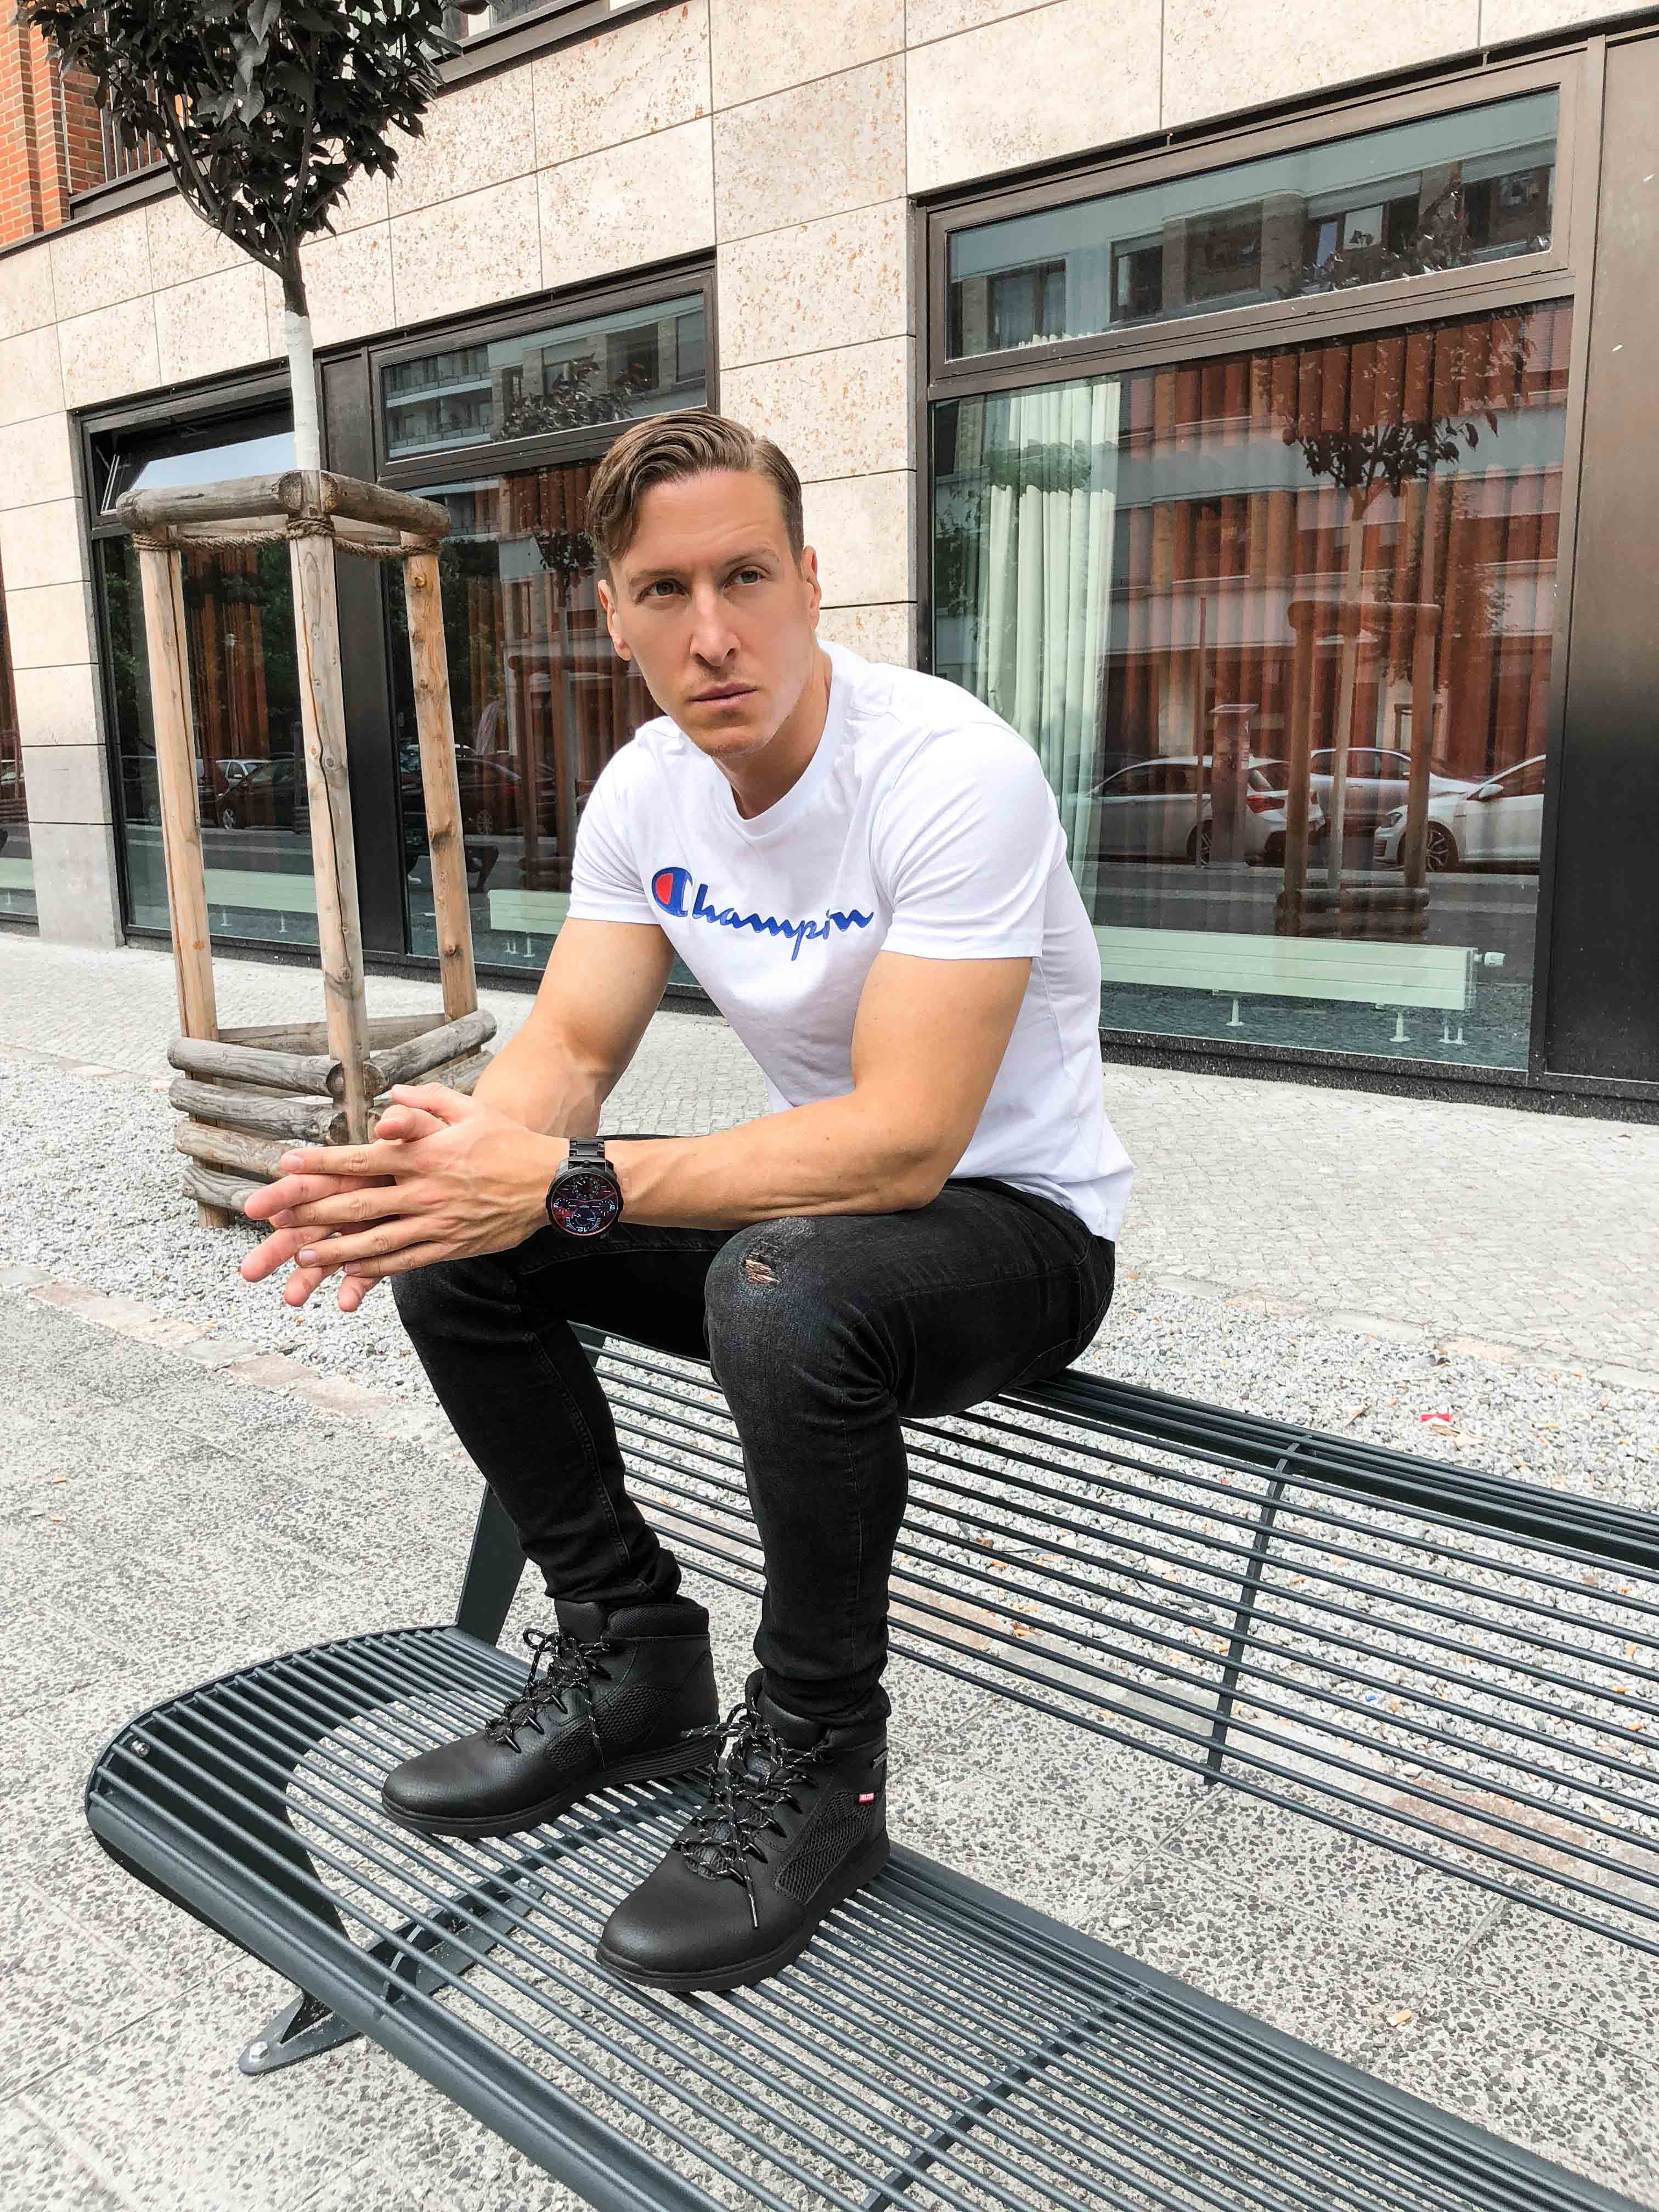 weisses-champion-shirt-sportlicher-look-sommer-berlin-blogger-retro-modeblog-timberland-helcor-boots-outfit-ootd